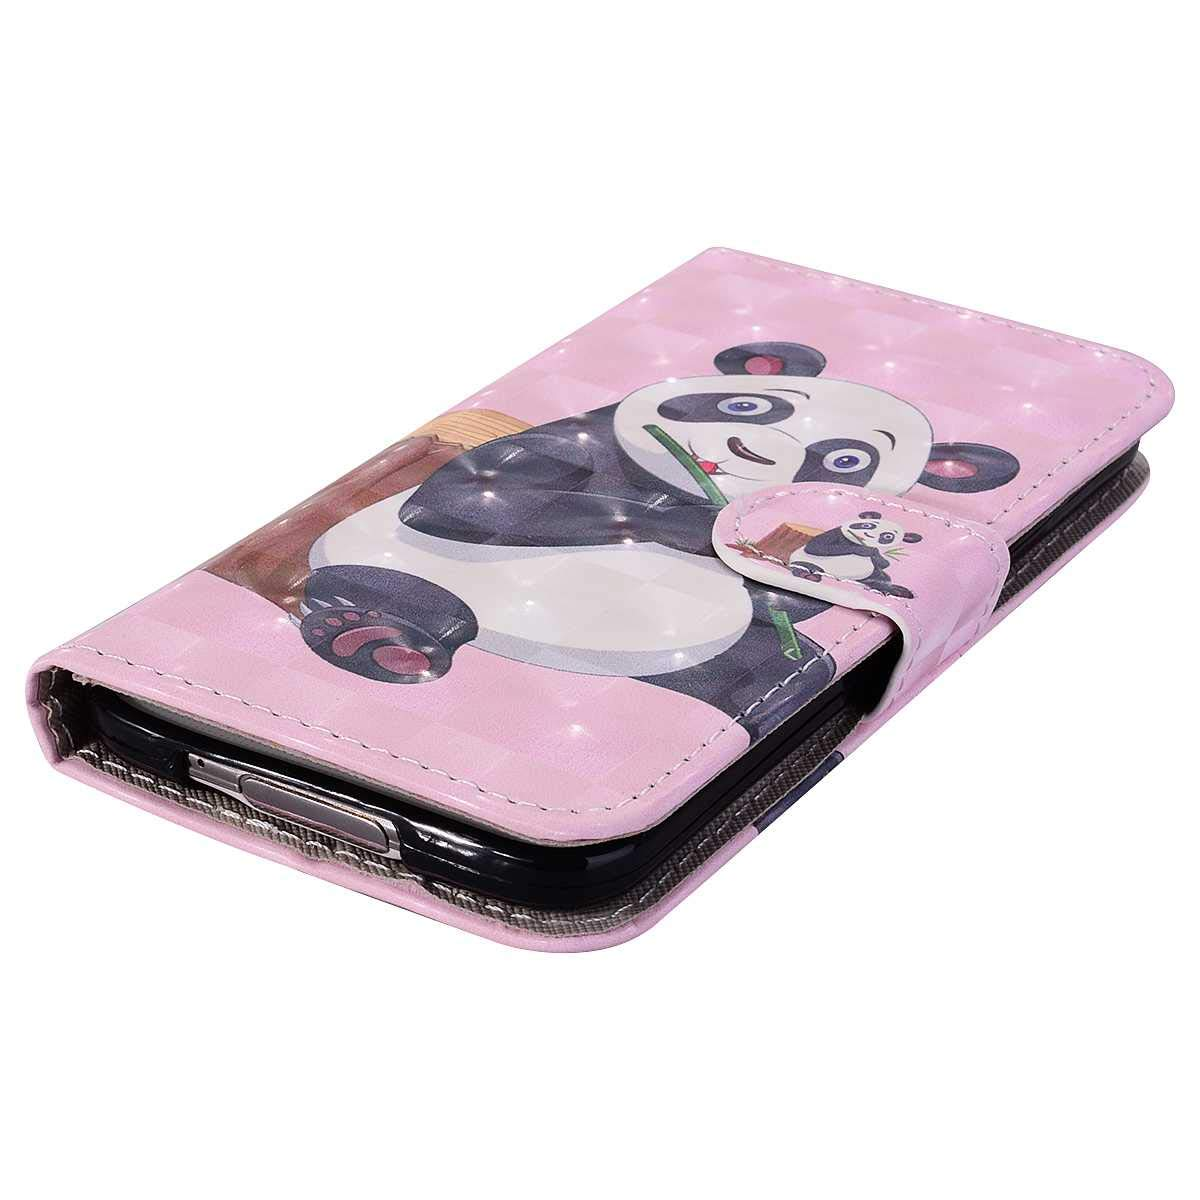 Galaxy S5 Shockproof TPU Protective Cover with Magnetic Closure Bear Village/® Case for Samsung Galaxy S5 Folding Anti Scratch PU Leather Case Rose